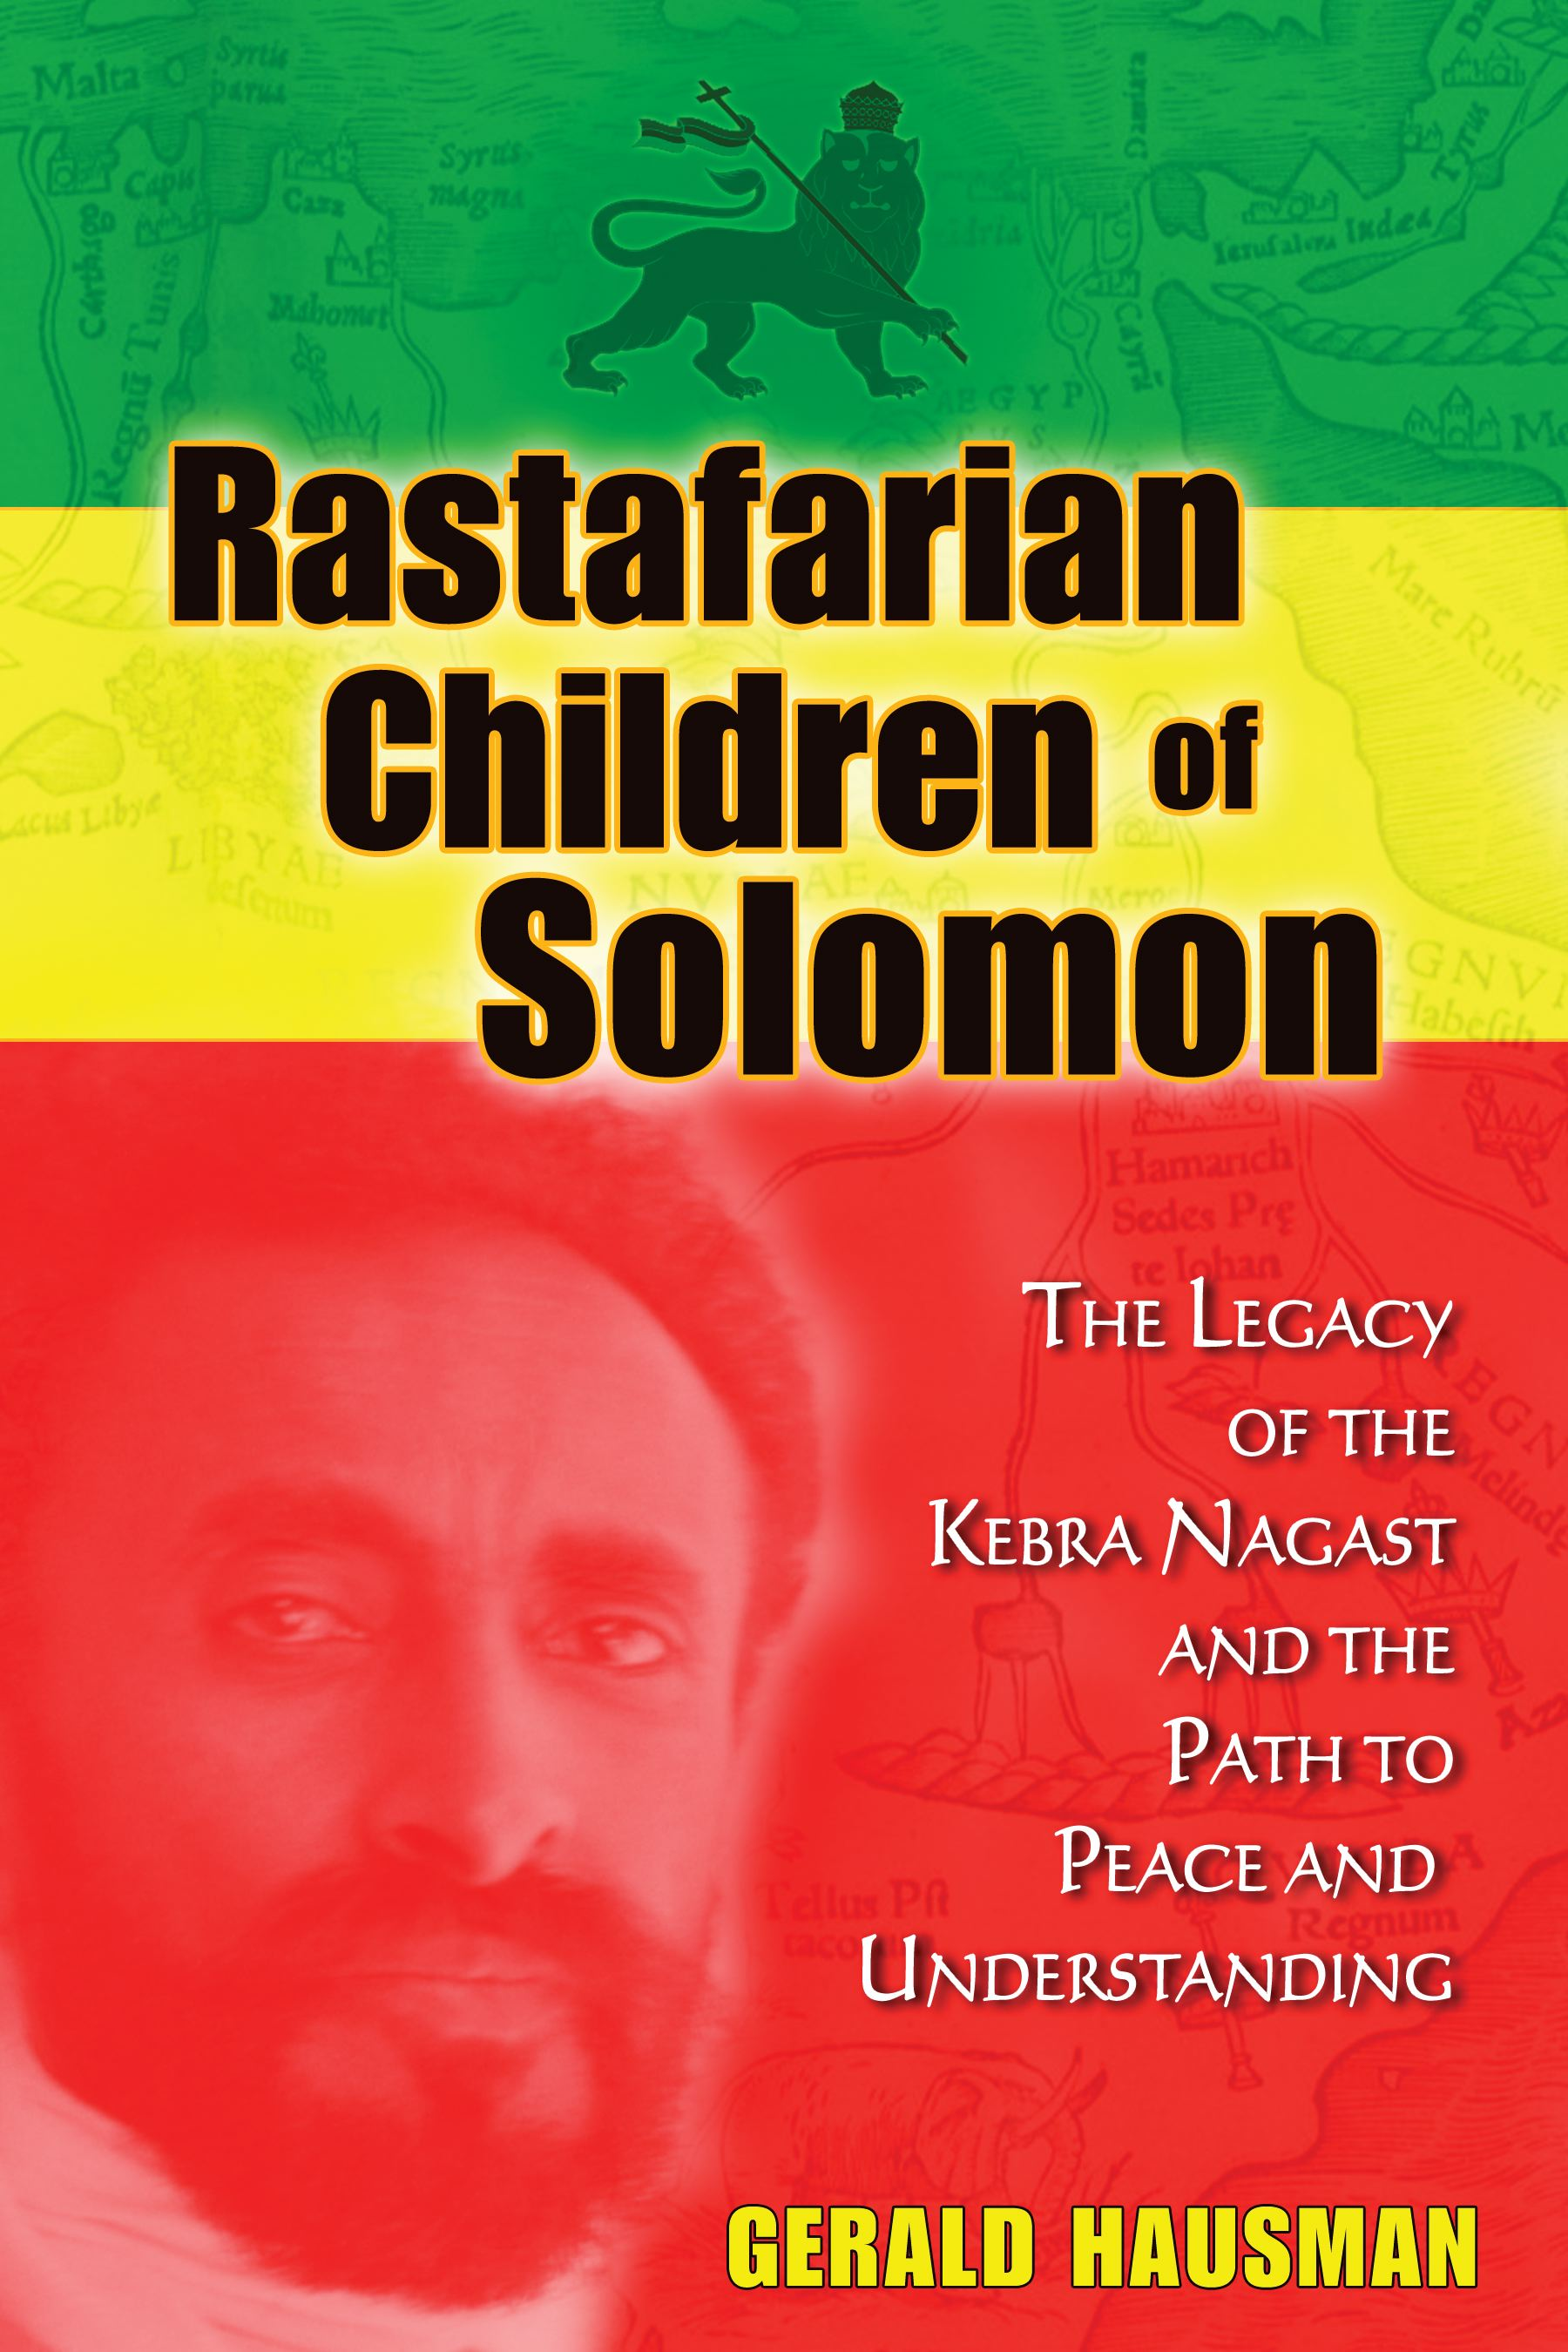 Rastafarian children of solomon 9781591431541 hr